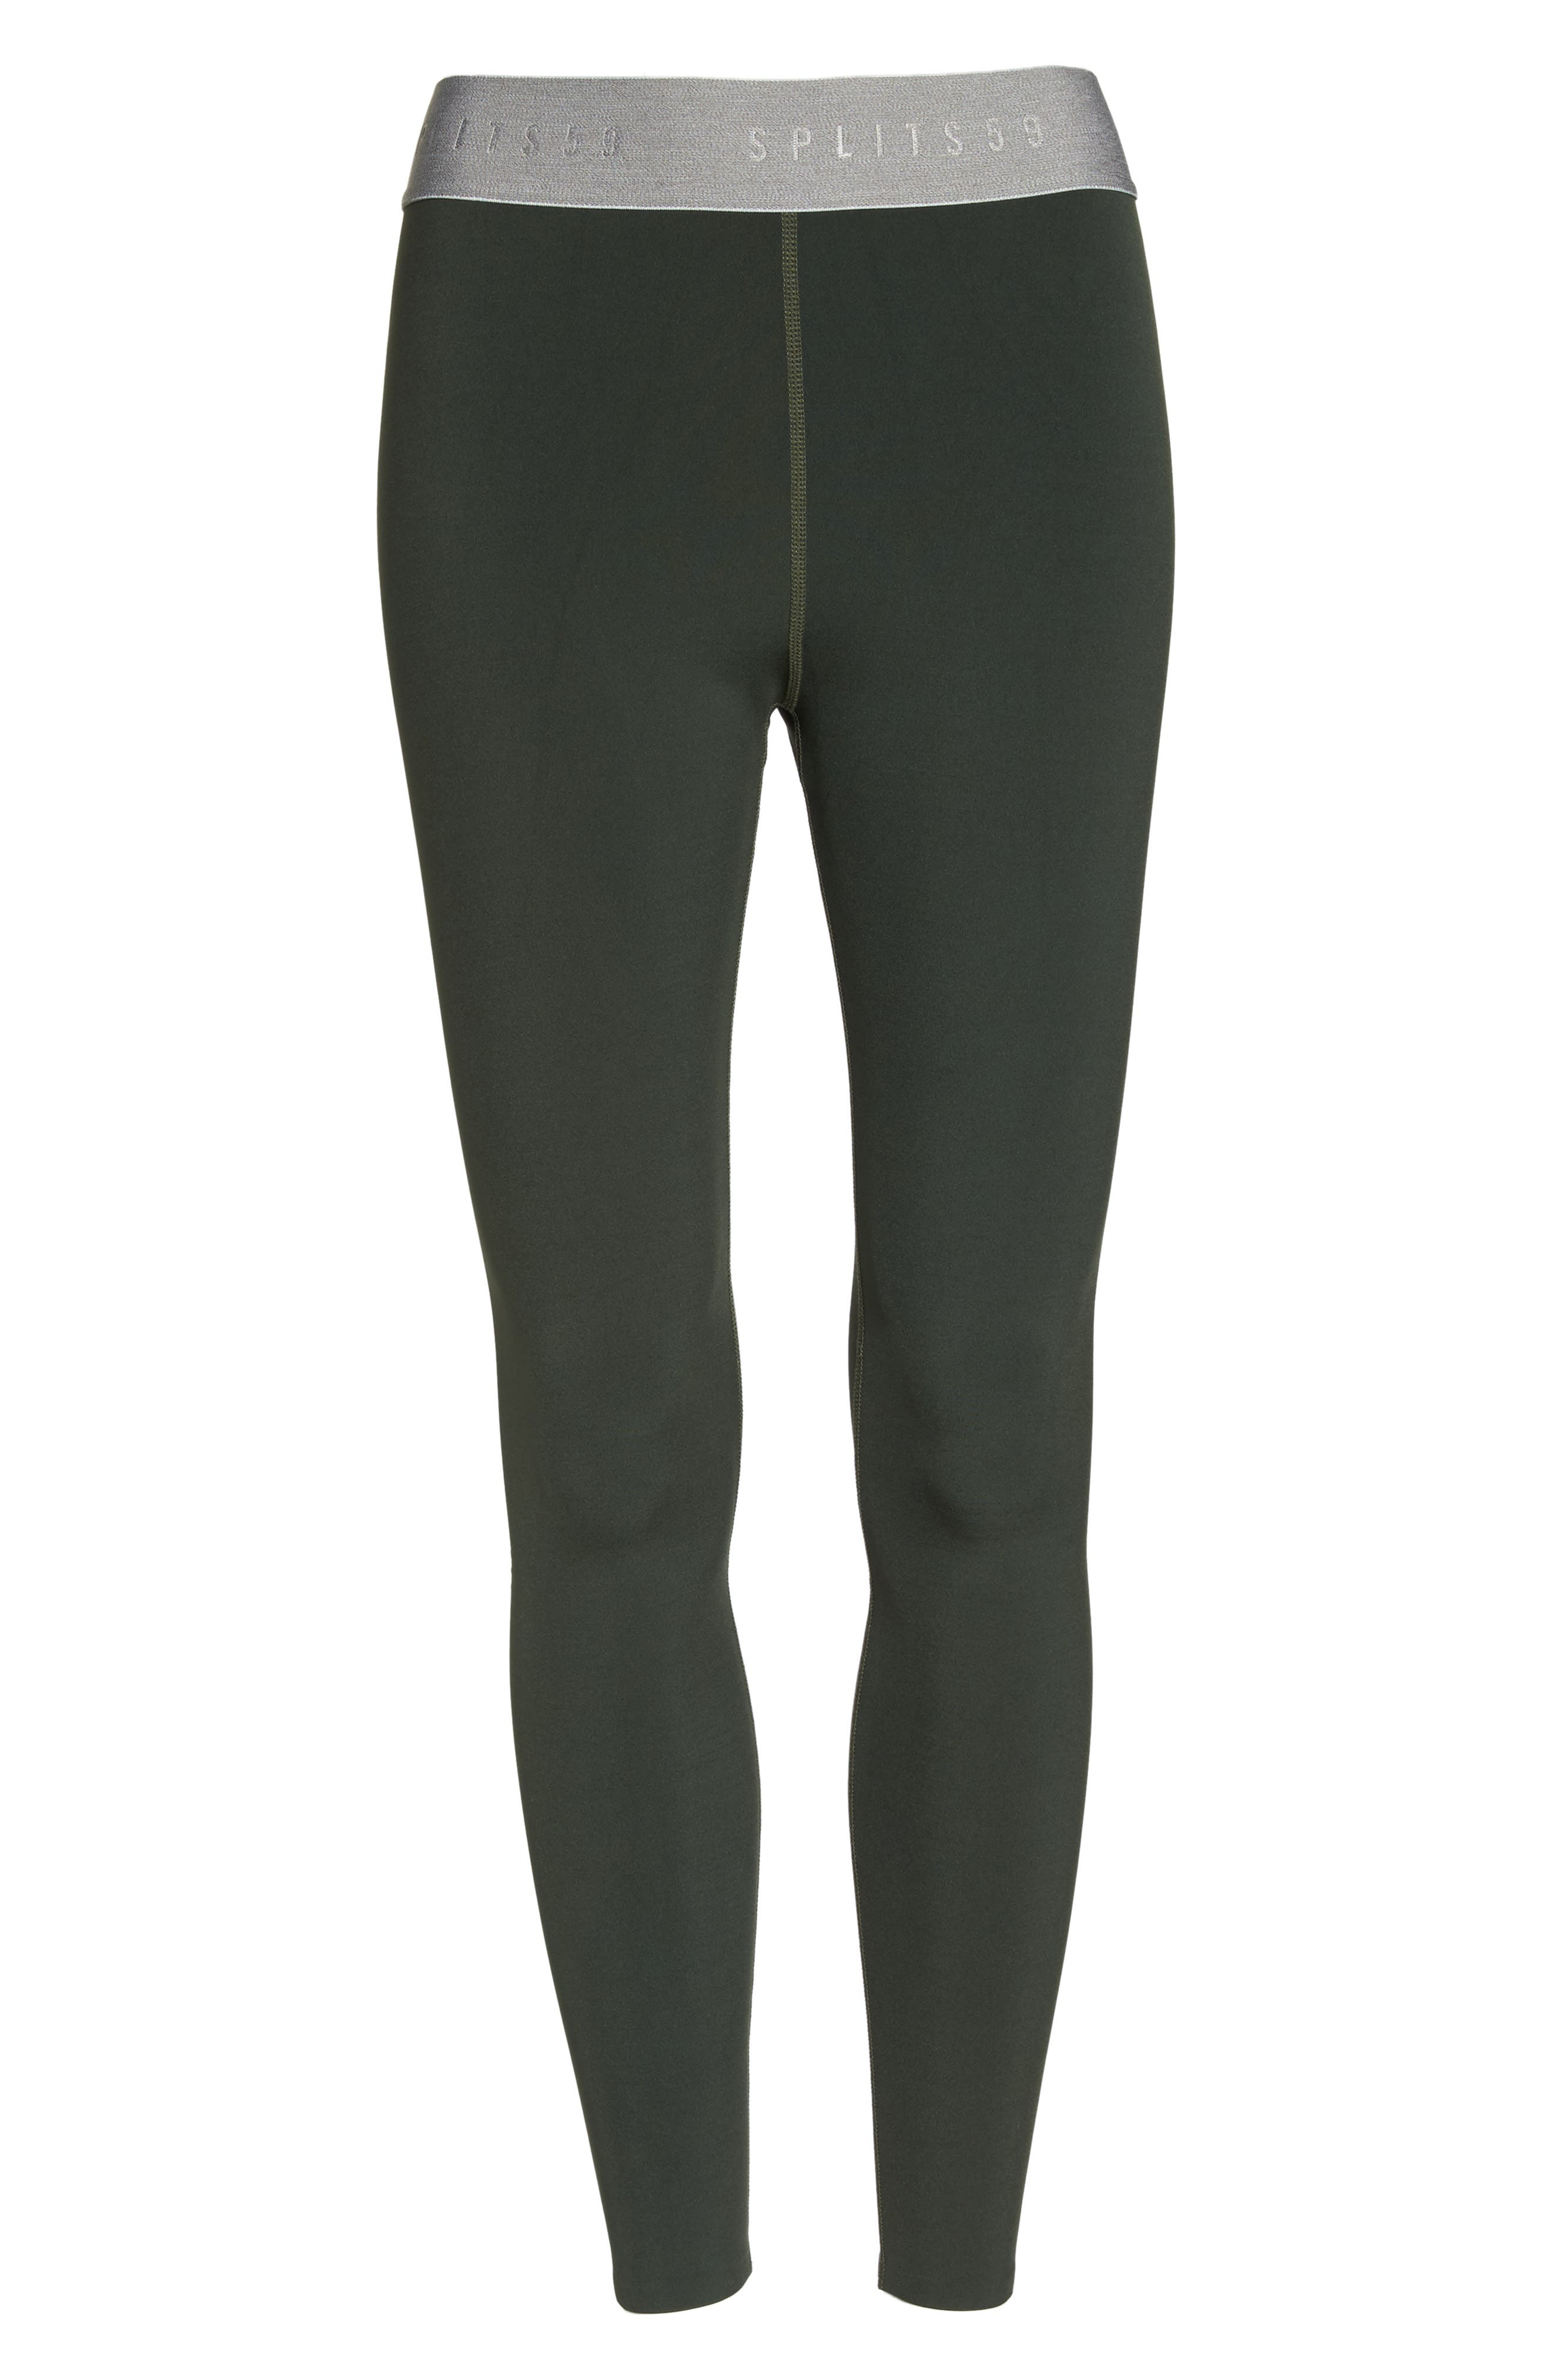 Tempo Ankle Tights,                             Alternate thumbnail 7, color,                             Army